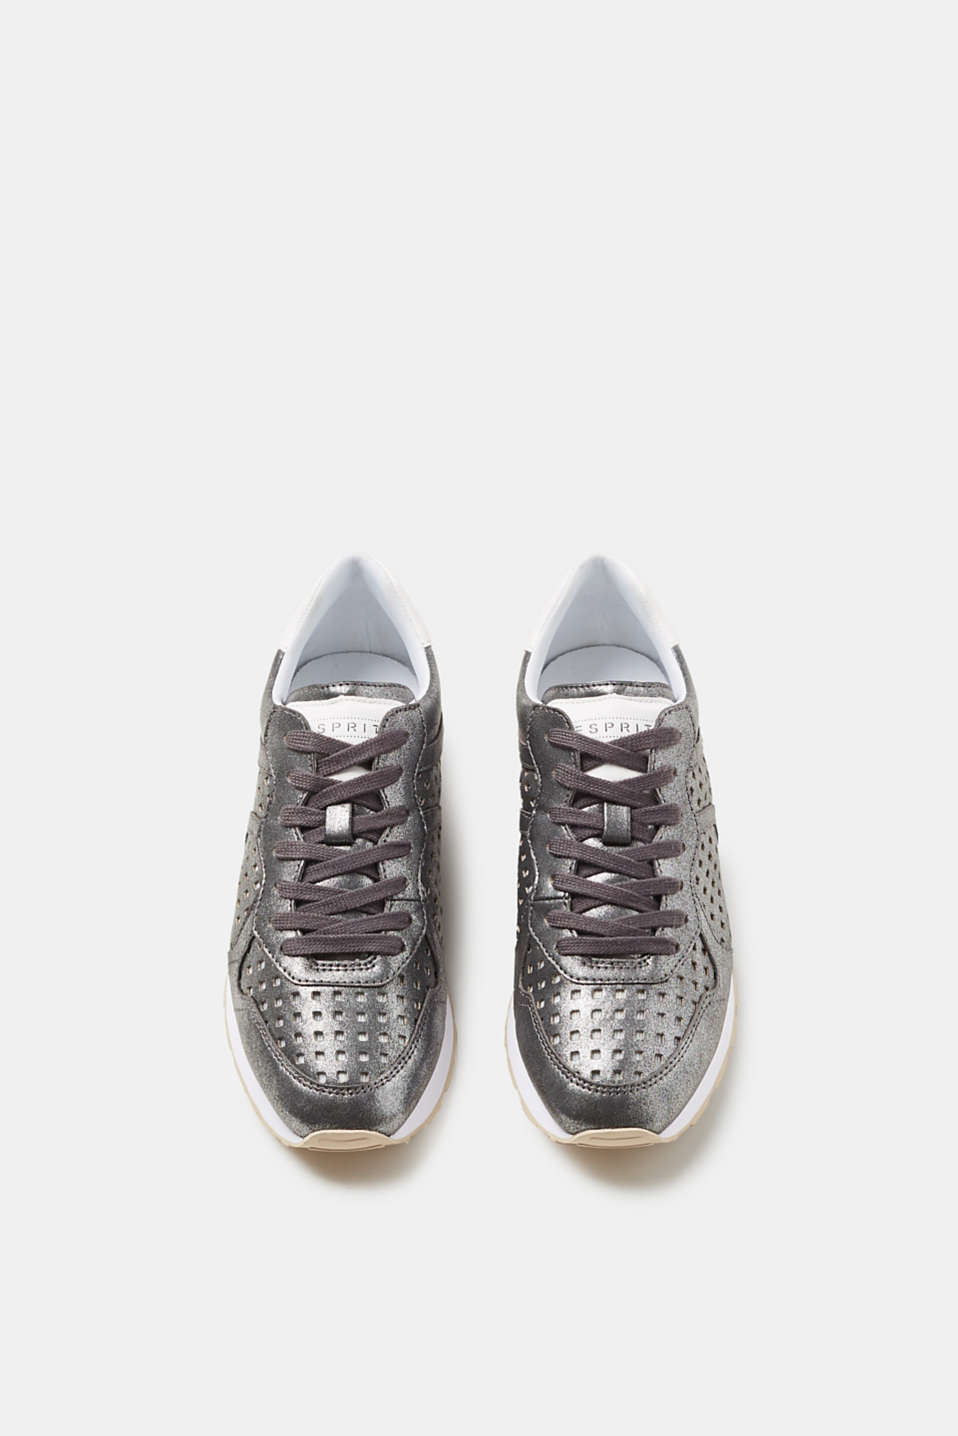 Metallic trainers with an openwork pattern